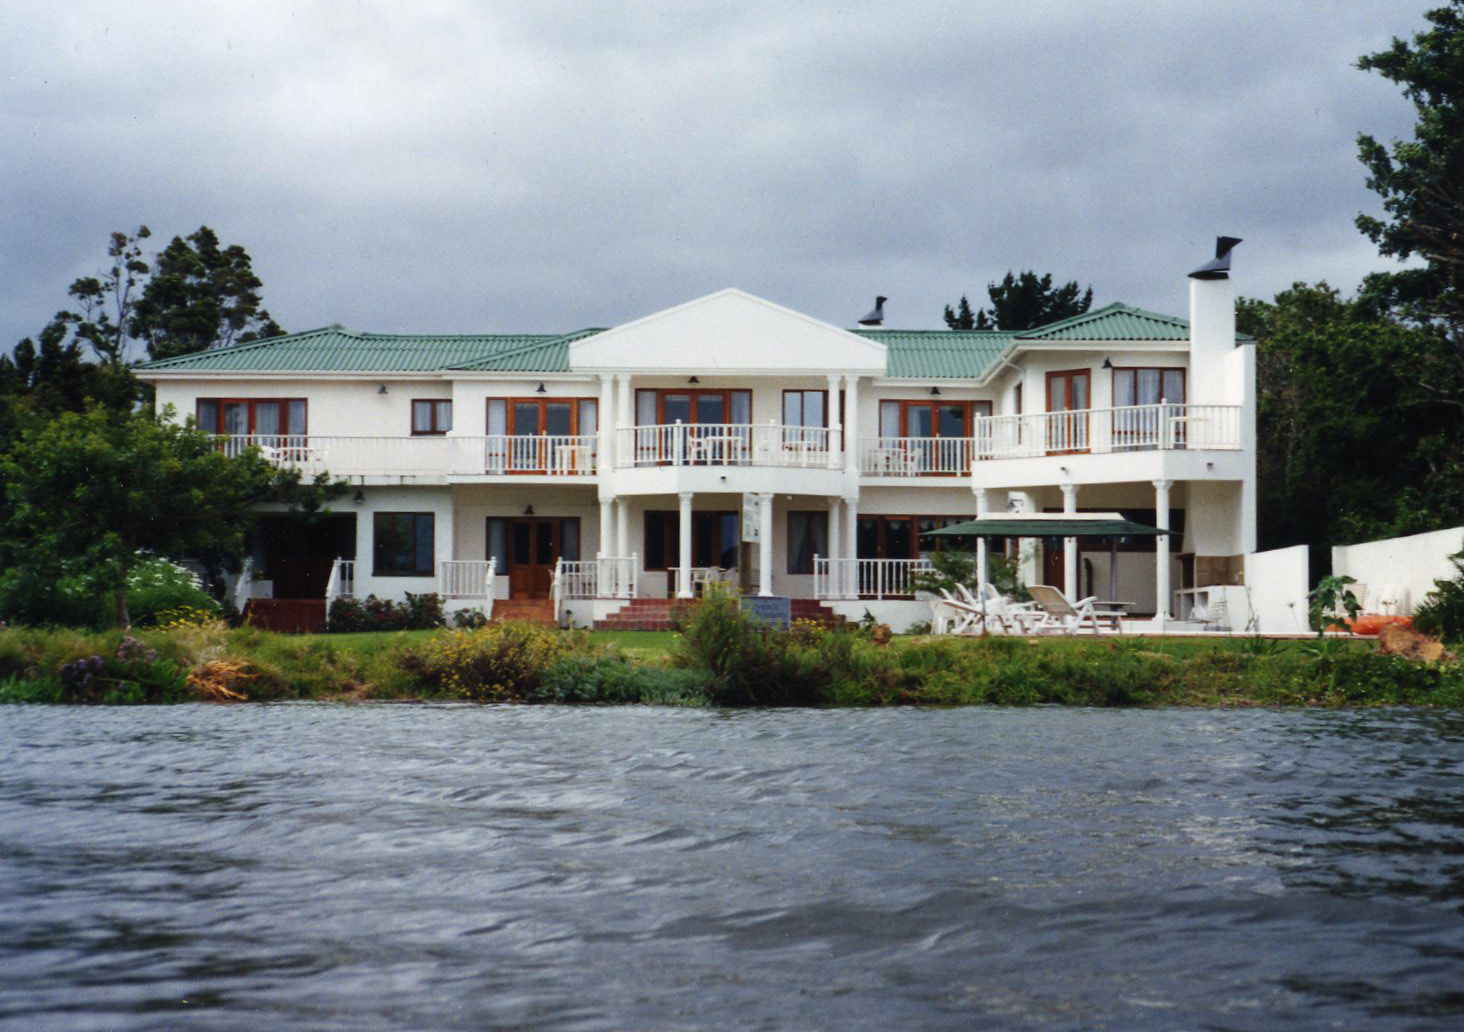 Waterfront Lodge